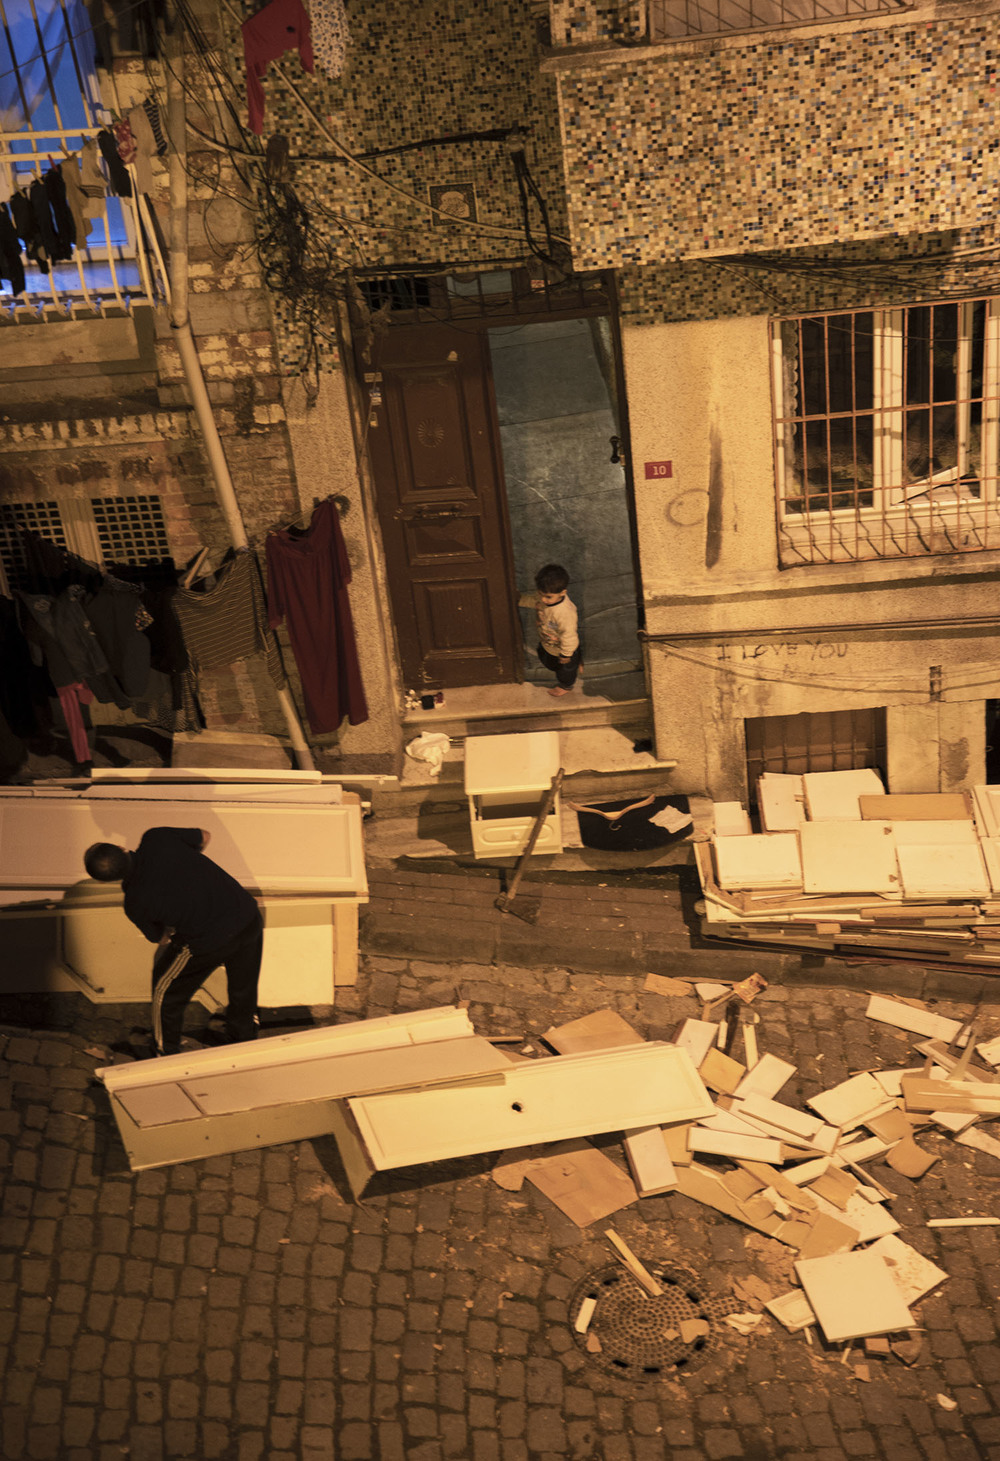 Furniture as Firewood, Balat, Istanbul